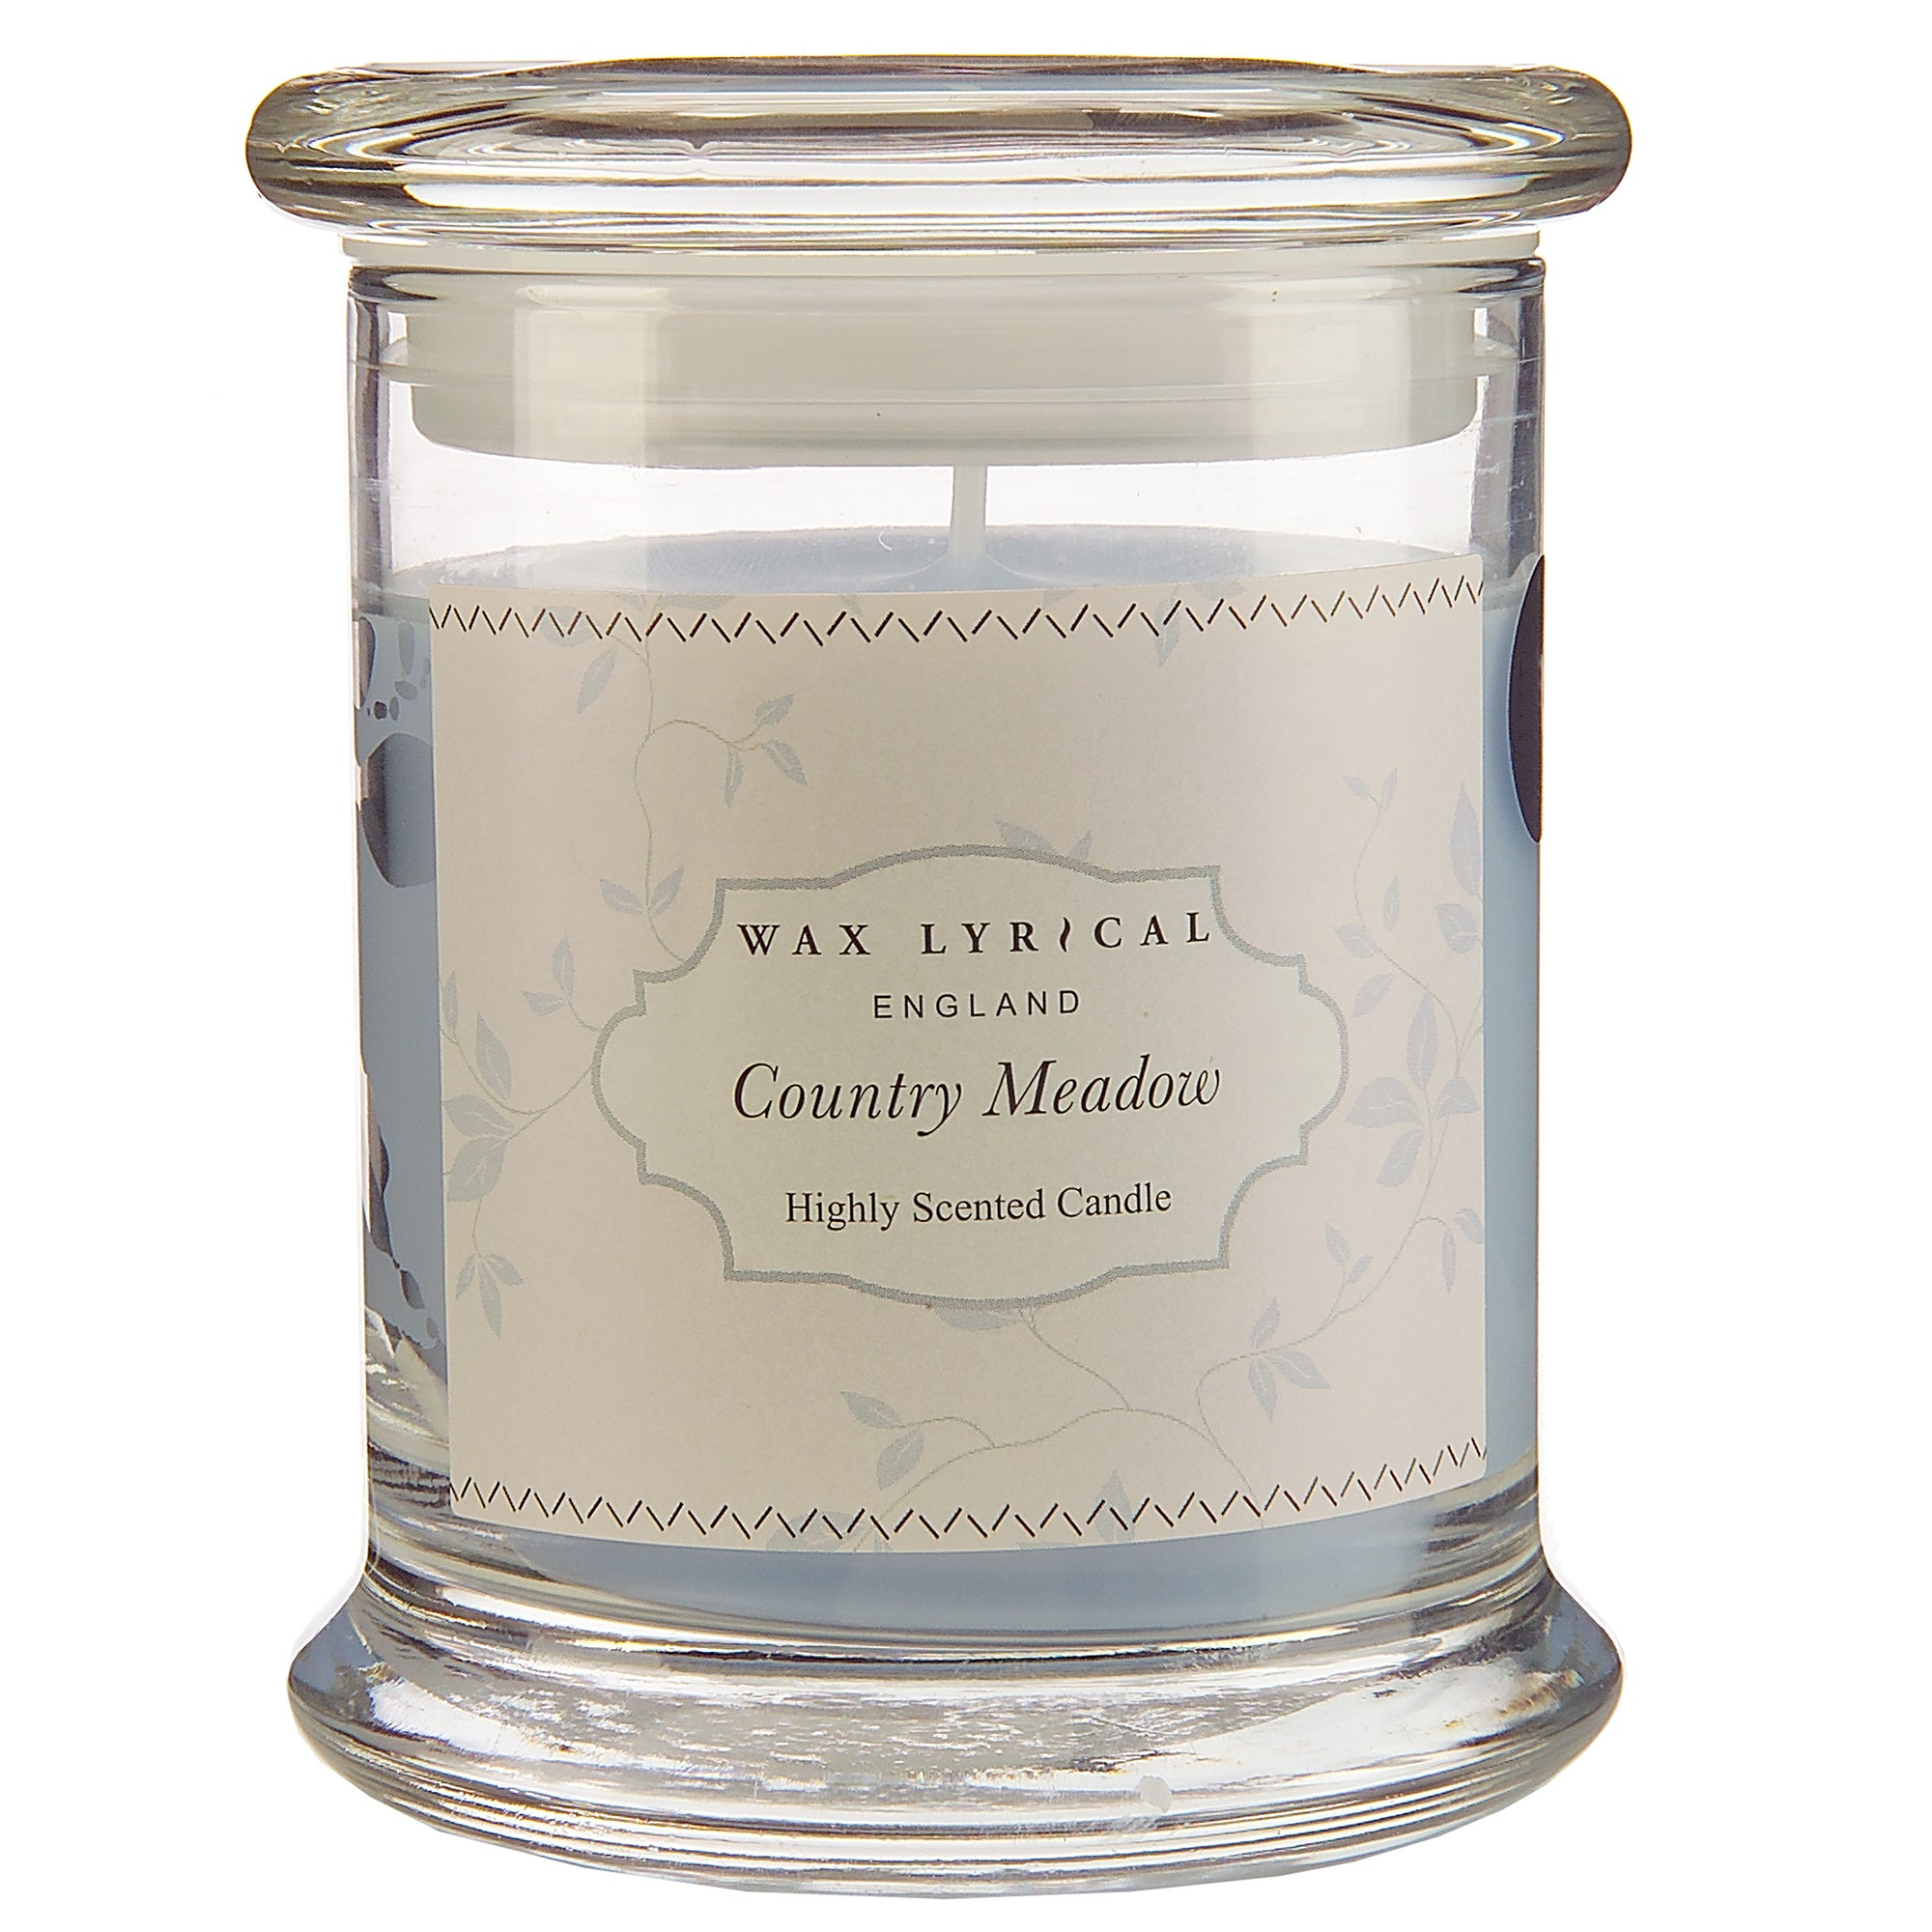 Wax Lyrical Country Meadow Large Wax Filled Jar Candle